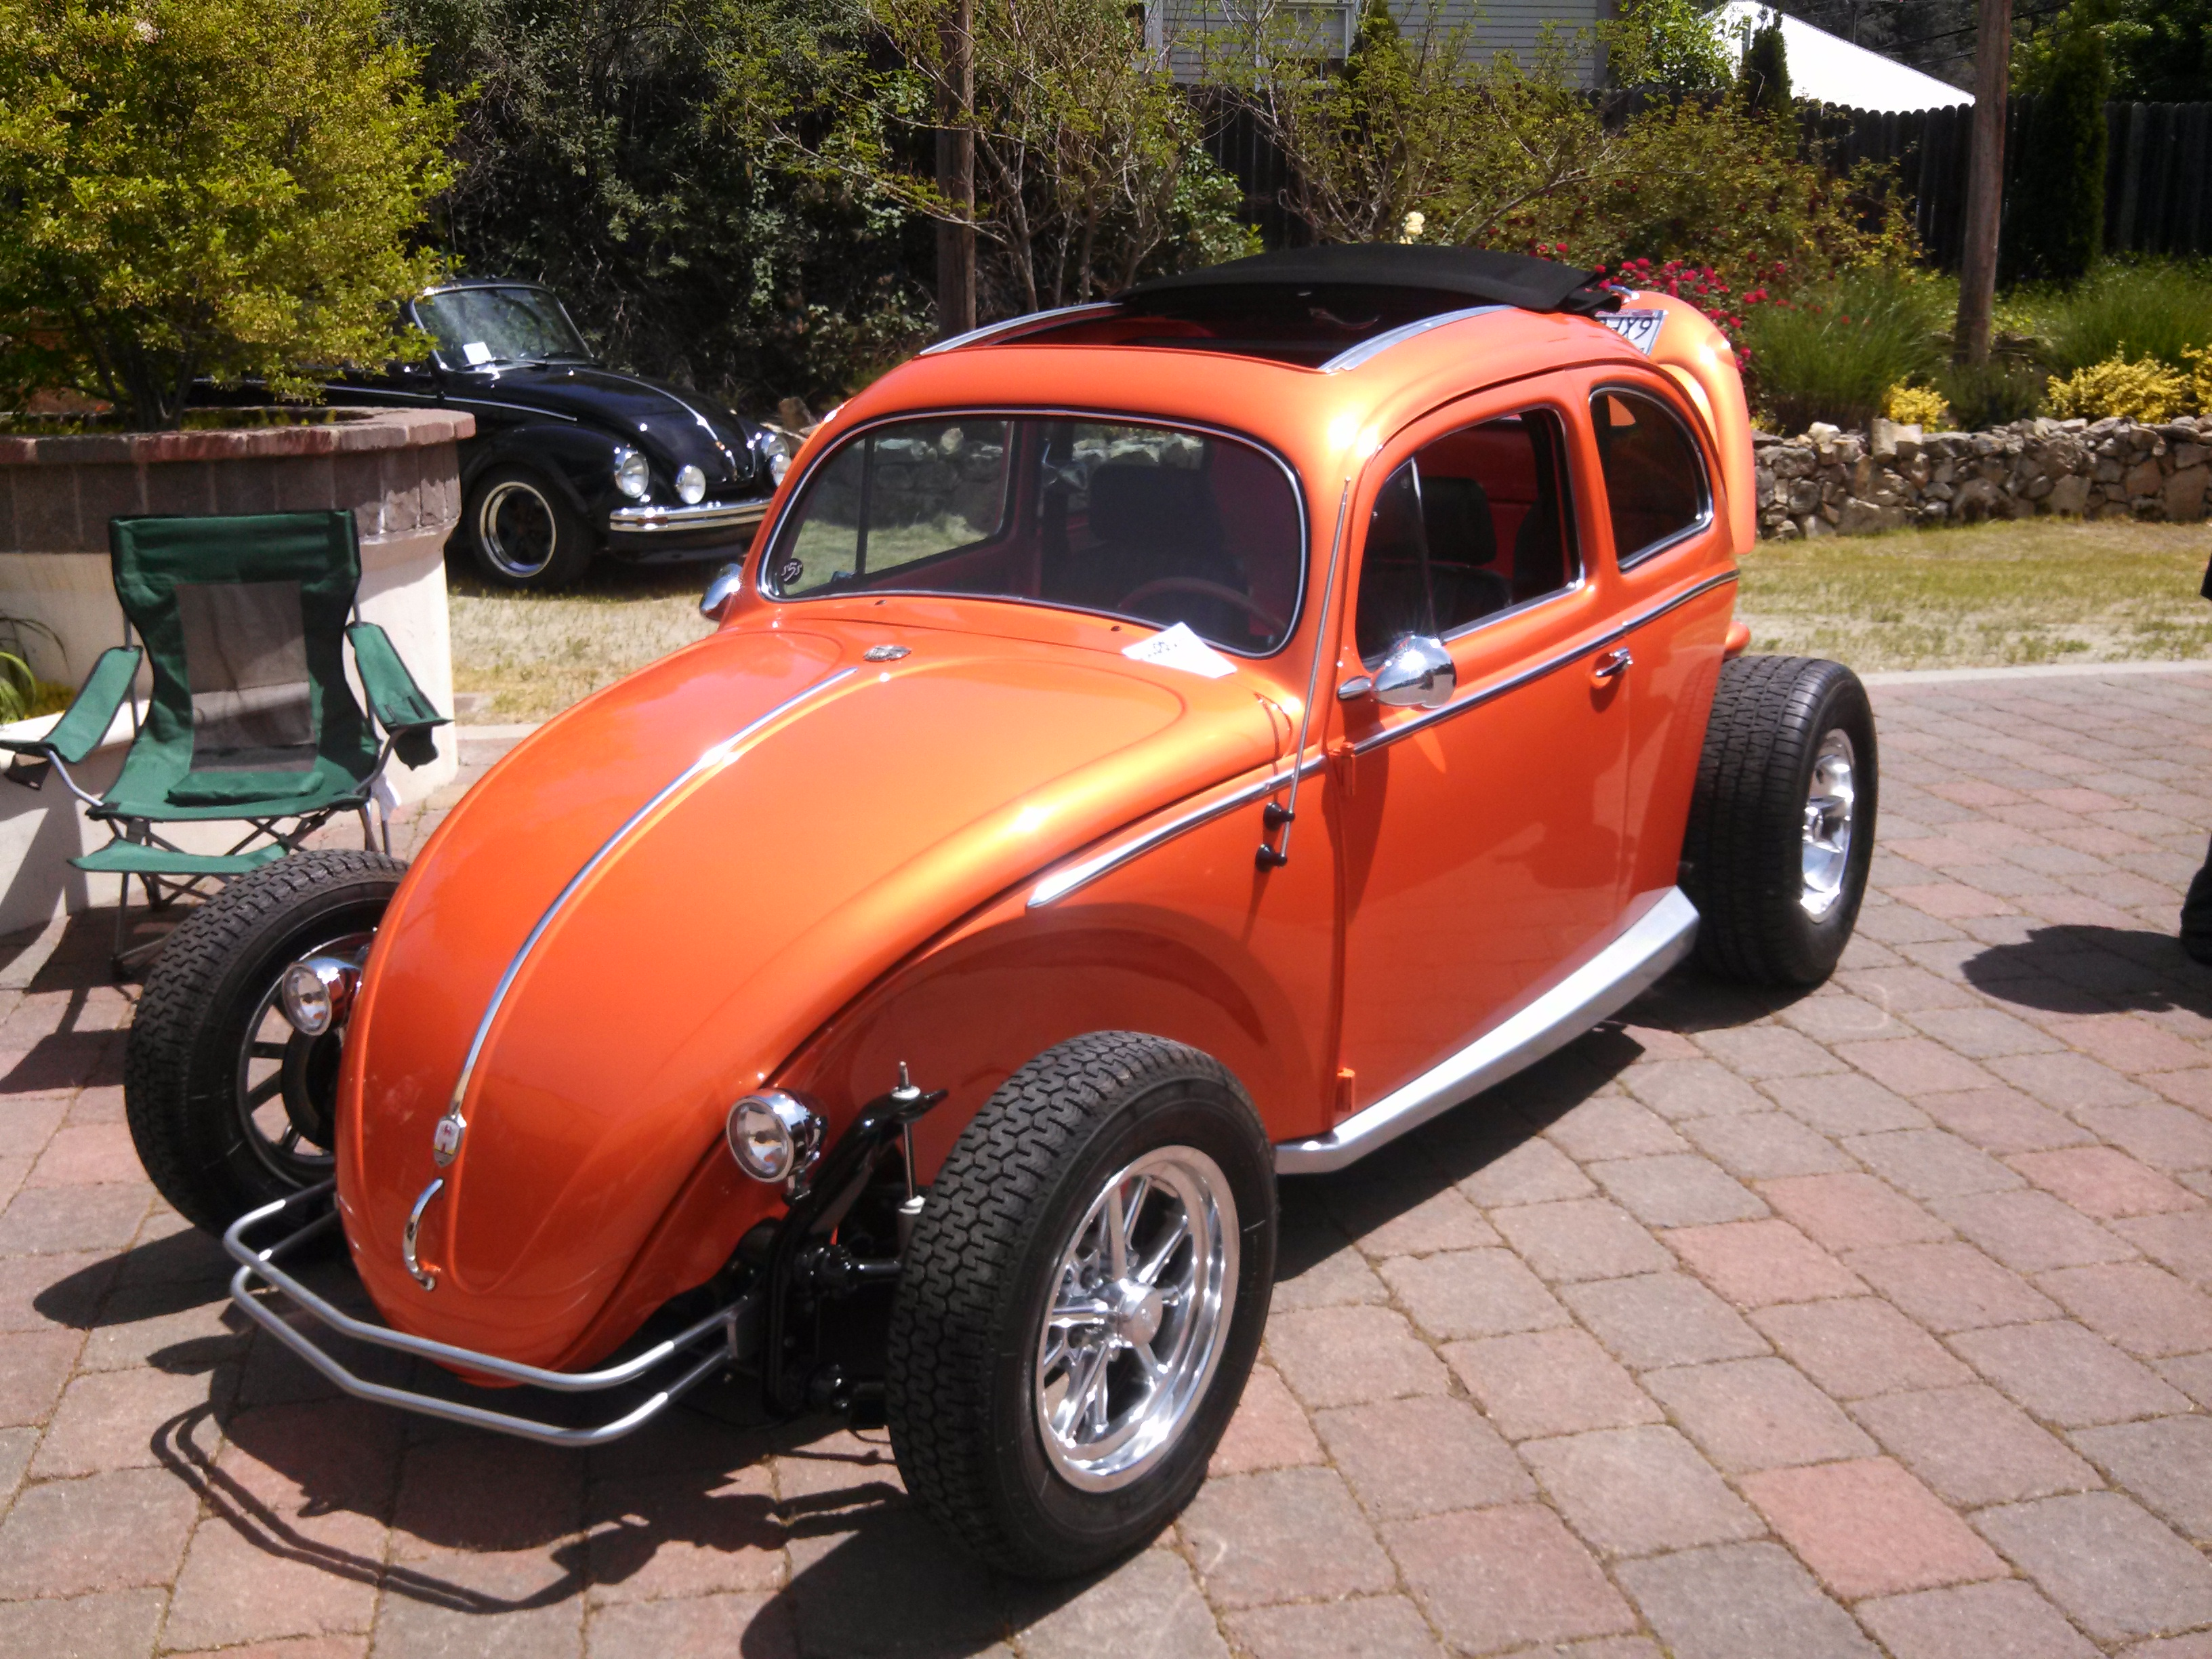 '57 Oval window ragtop with a 1914 turbo engine by TLR, owned by Brad Martin of Placerville, CA.